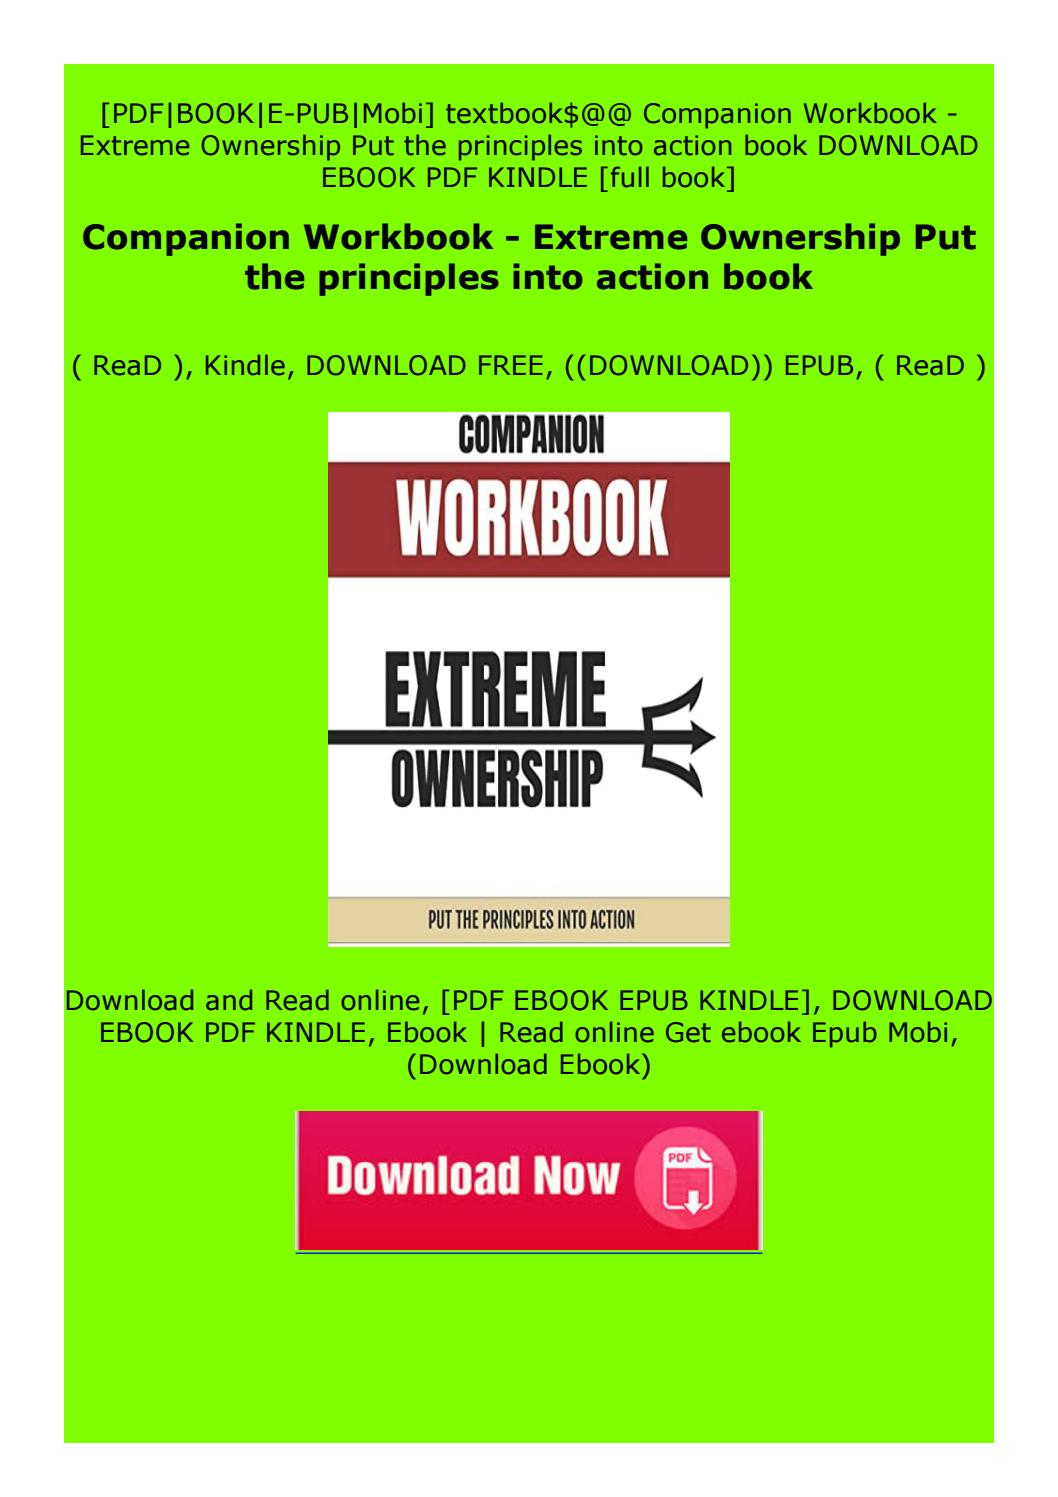 Extreme Ownership Principles Pdf